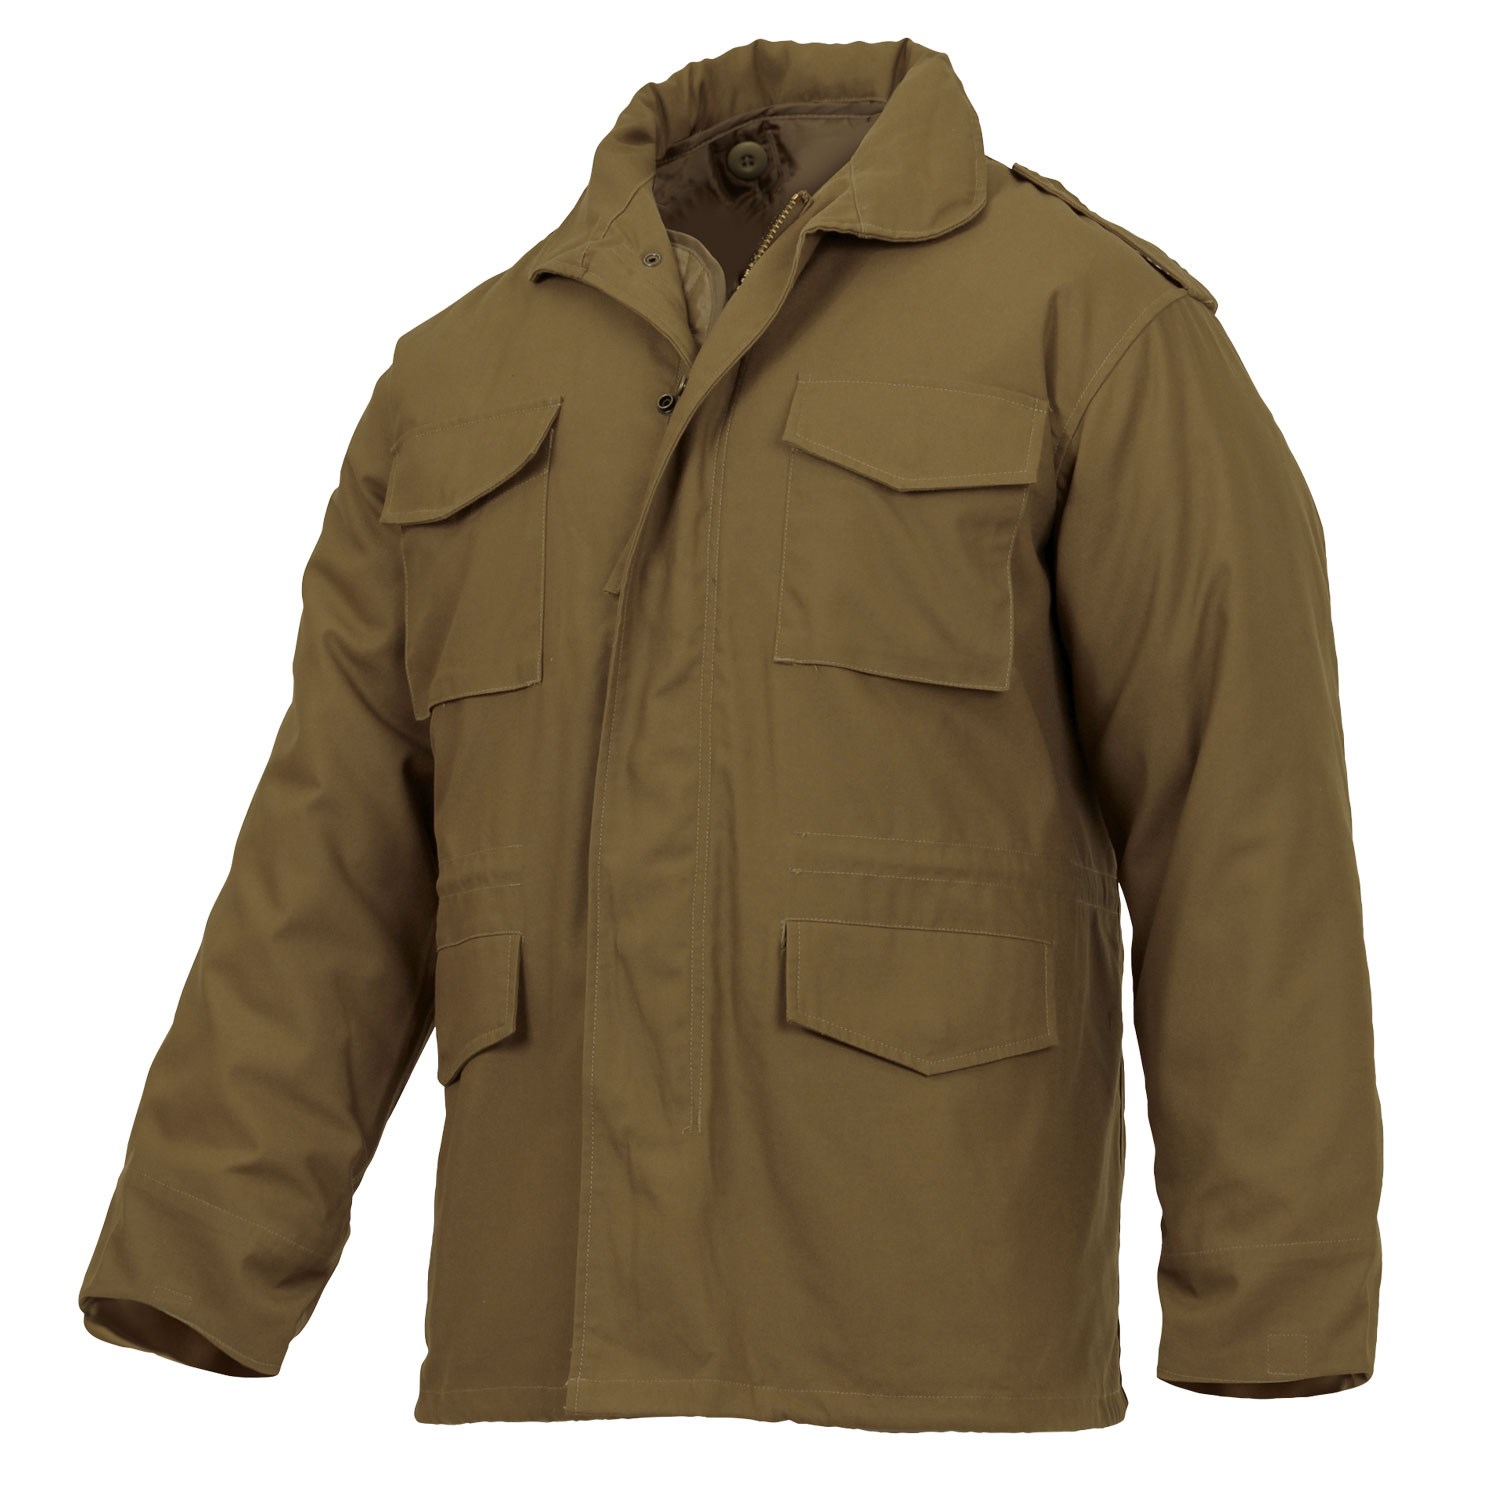 U.S. M65 jacket with liner COYOTE BROWN ROTHCO 3896 L-11